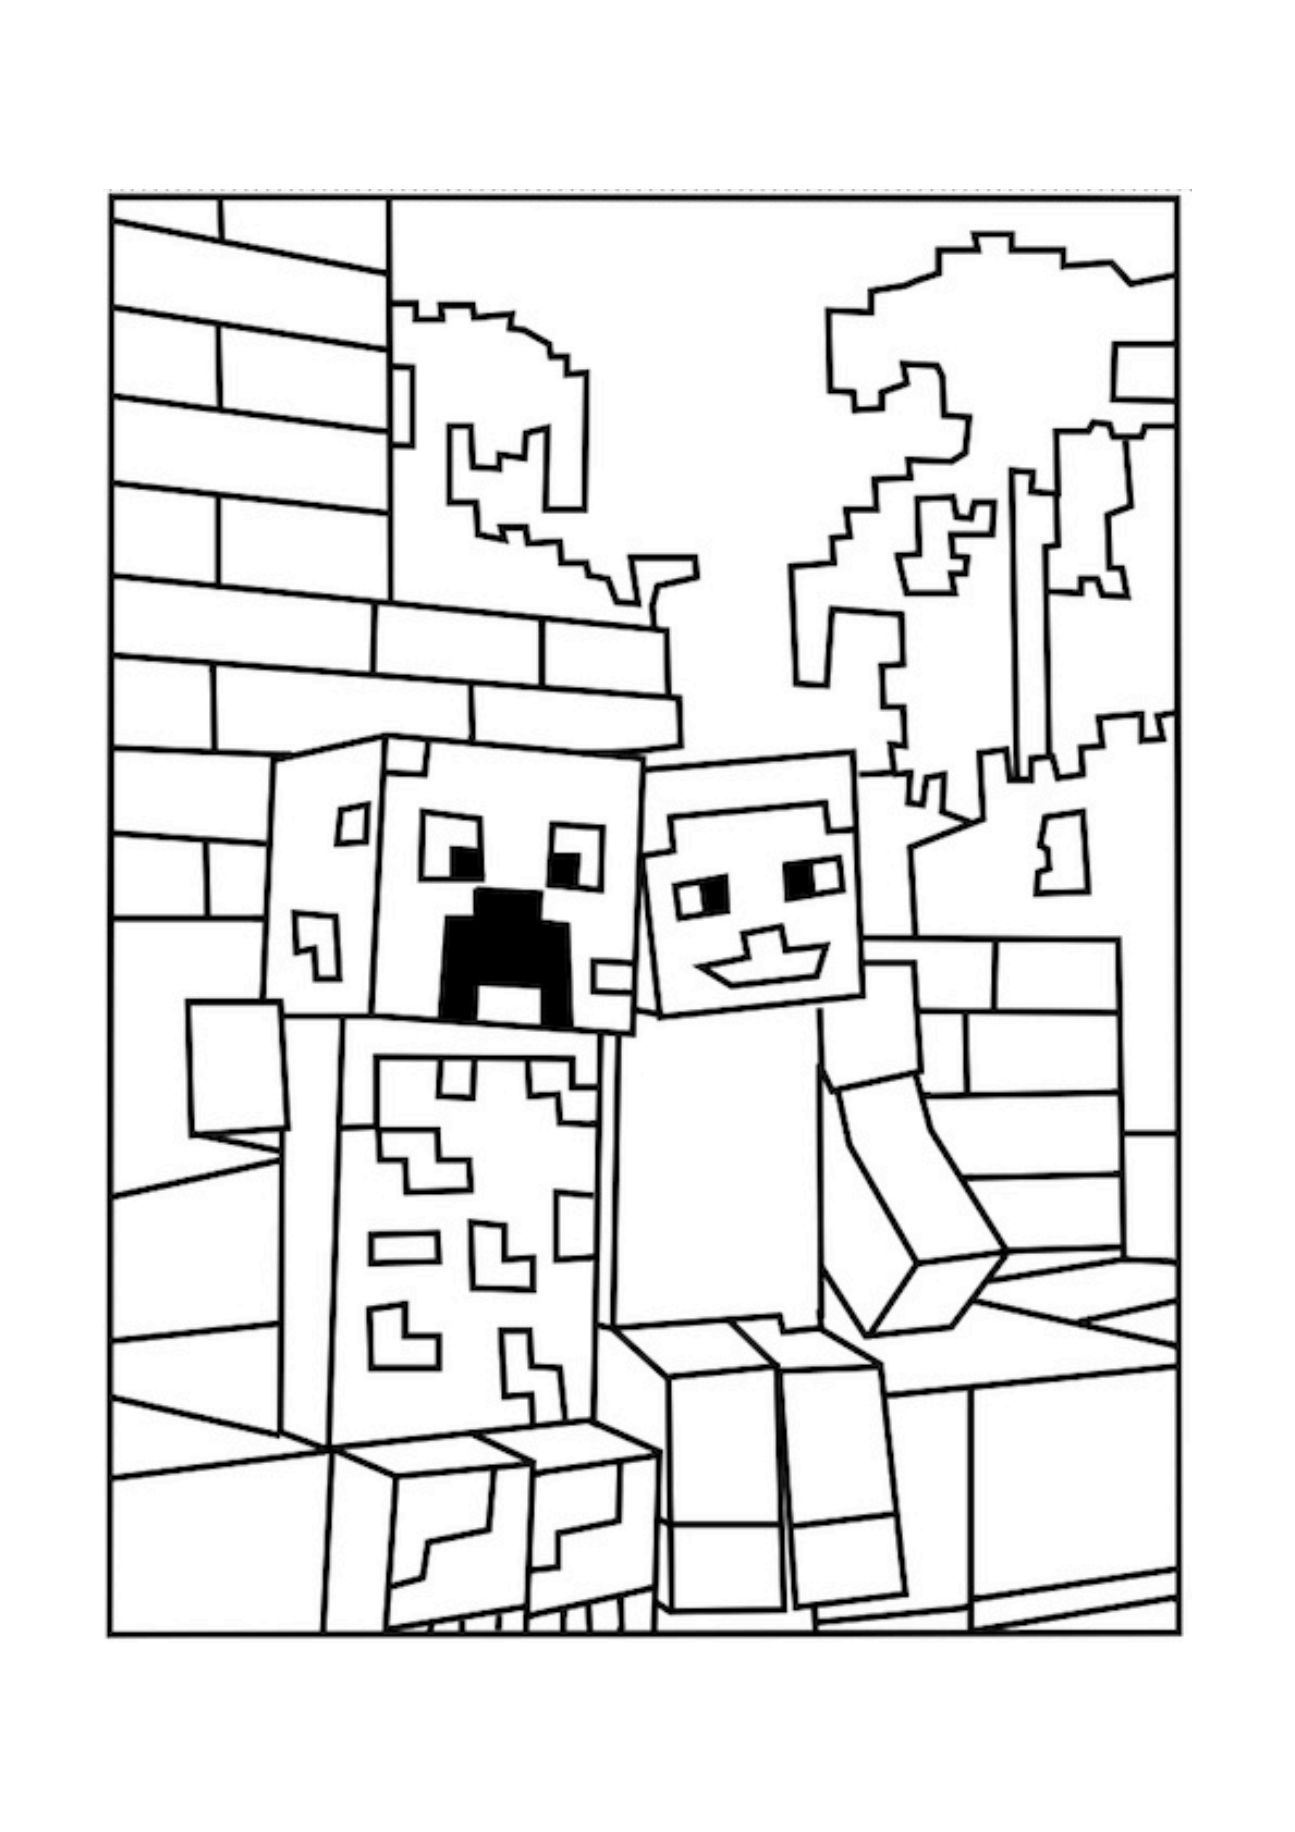 Printable Minecraft Coloring Pages Coloring Home Printable Minecraft Coloring Pages